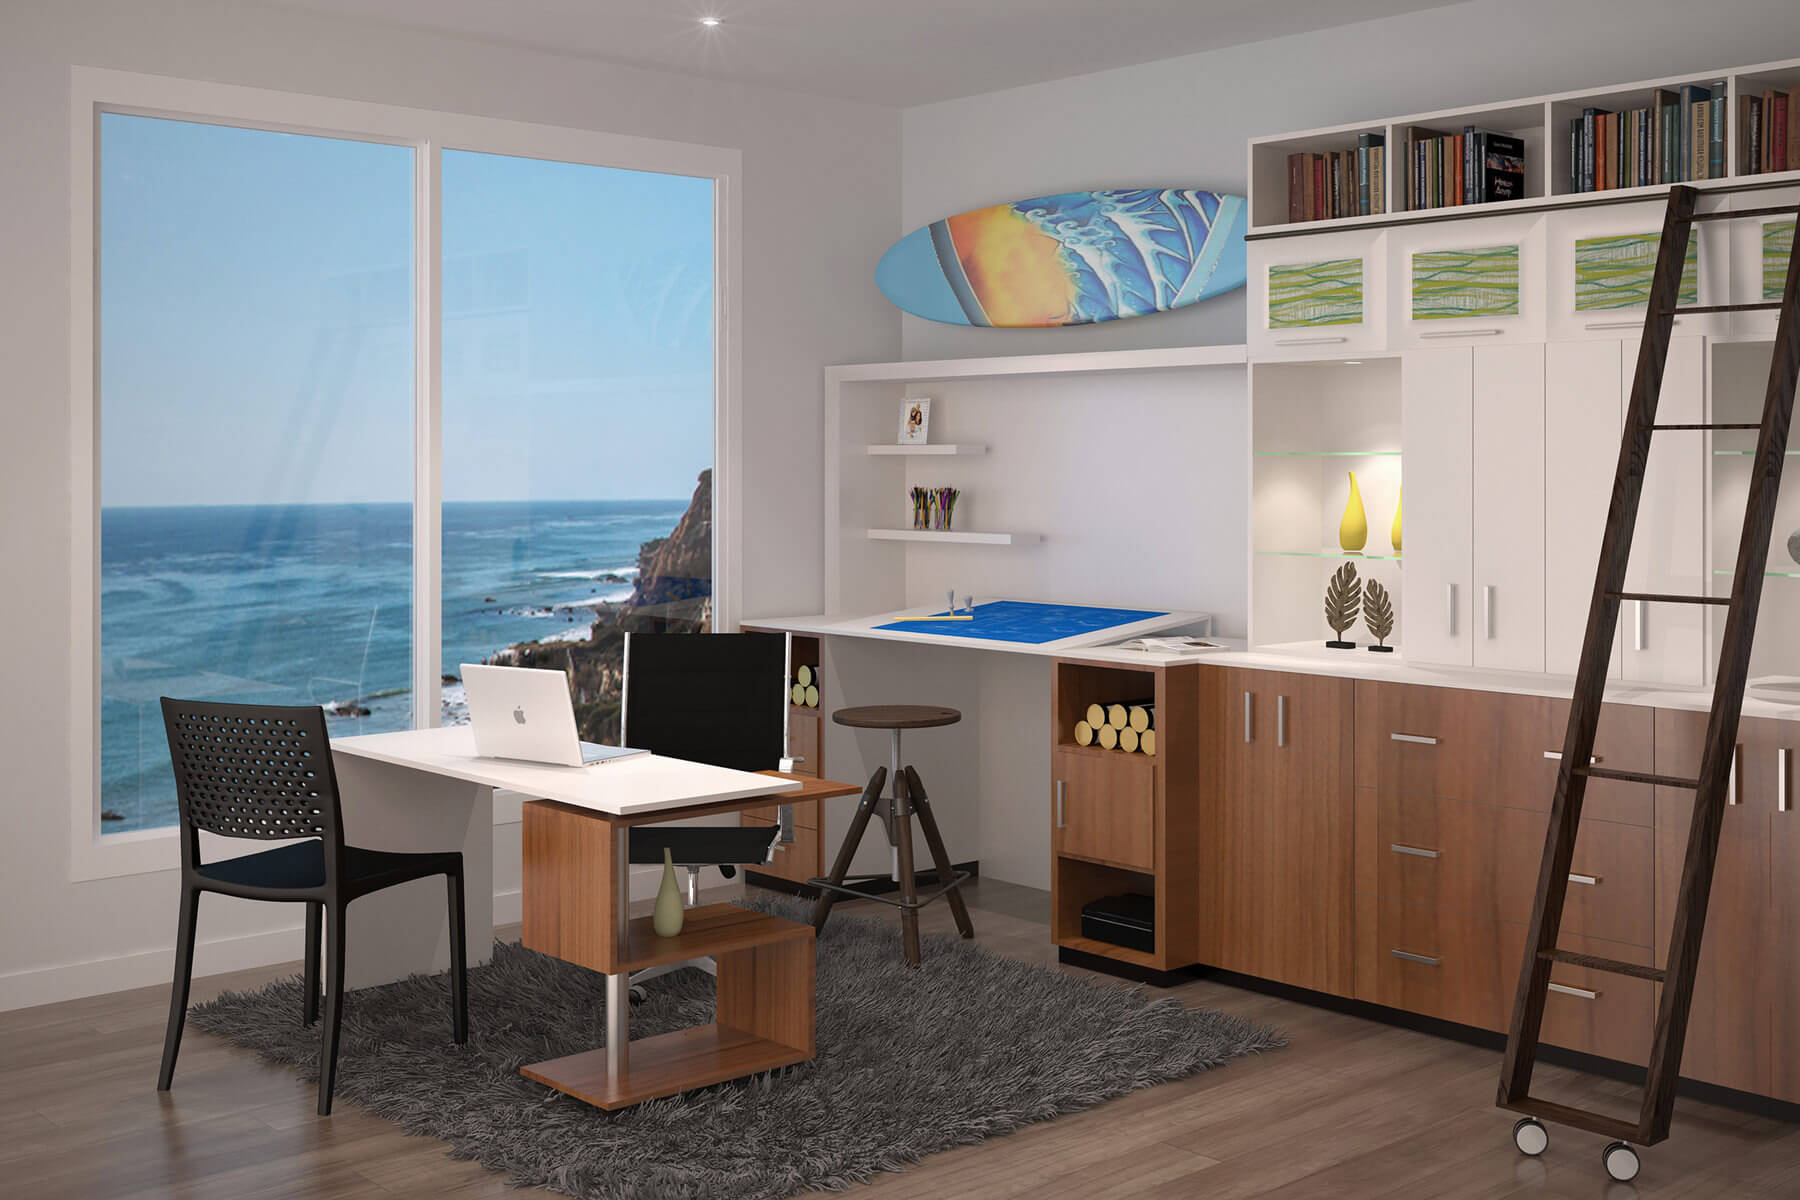 13cf-home-office-design.jpg